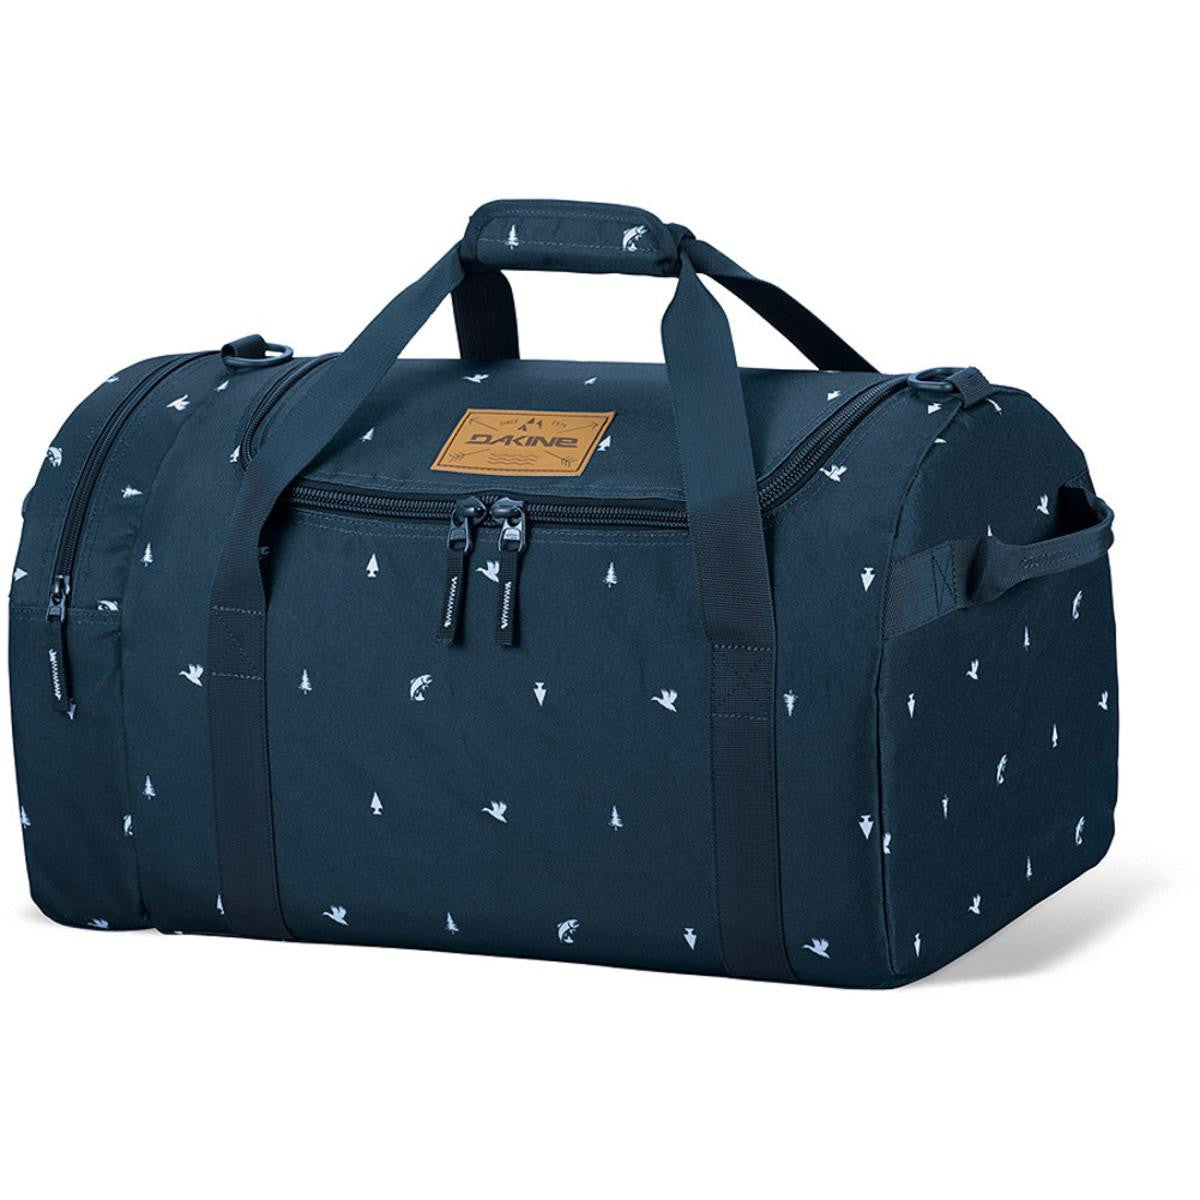 Dakine EQ 51L Duffel Bag